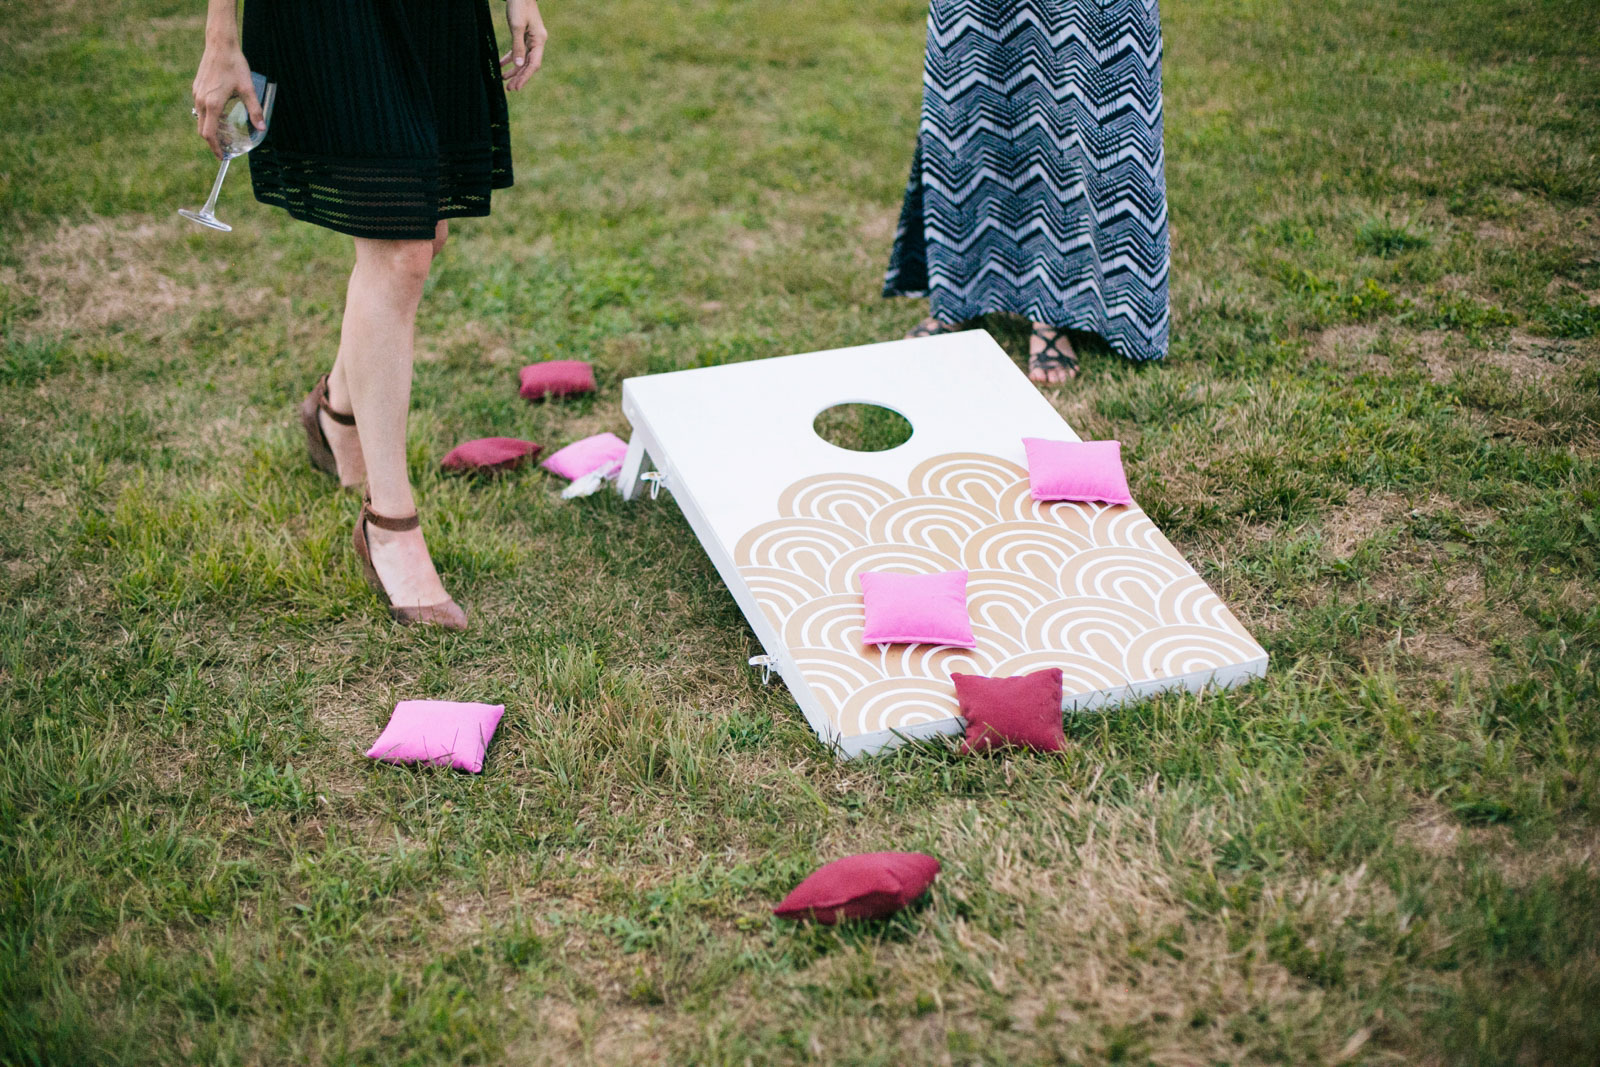 Detail of wedding guests playing cornhole on the grass during outdoor wedding reception.